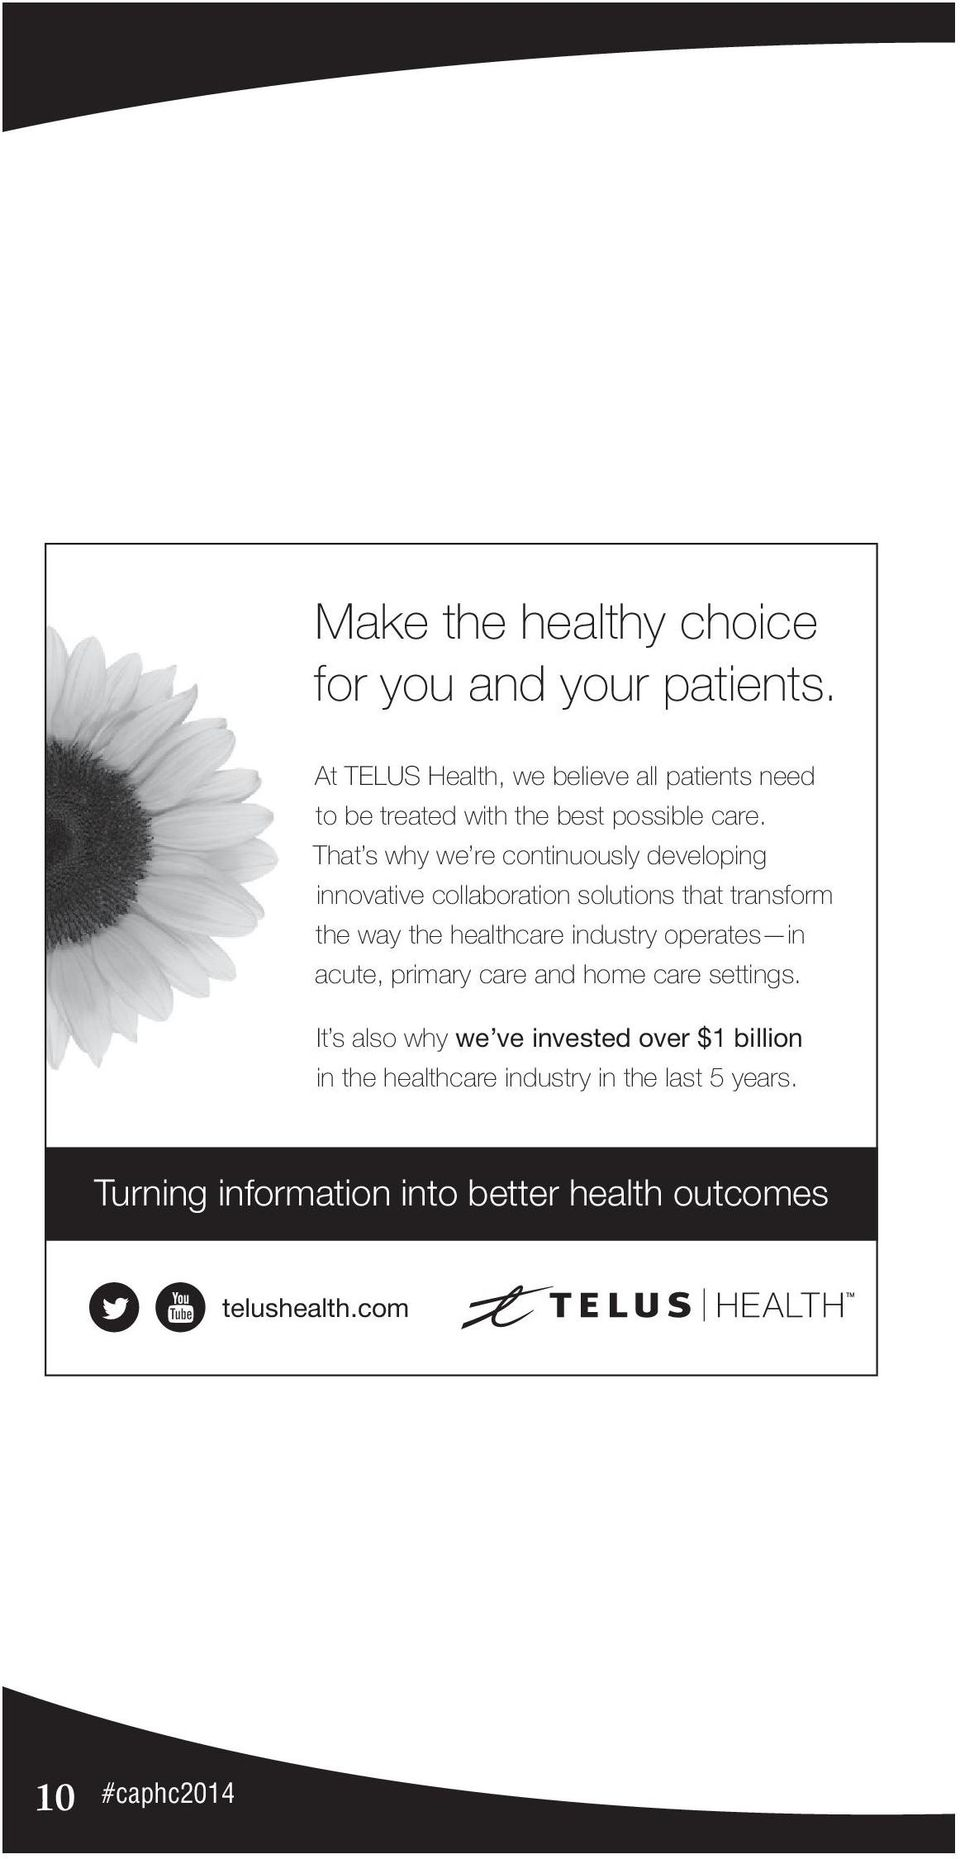 It s also why we ve invested over $1 billion in the healthcare industry in the last 5 years. Turning information into better health outcomes telushealth.